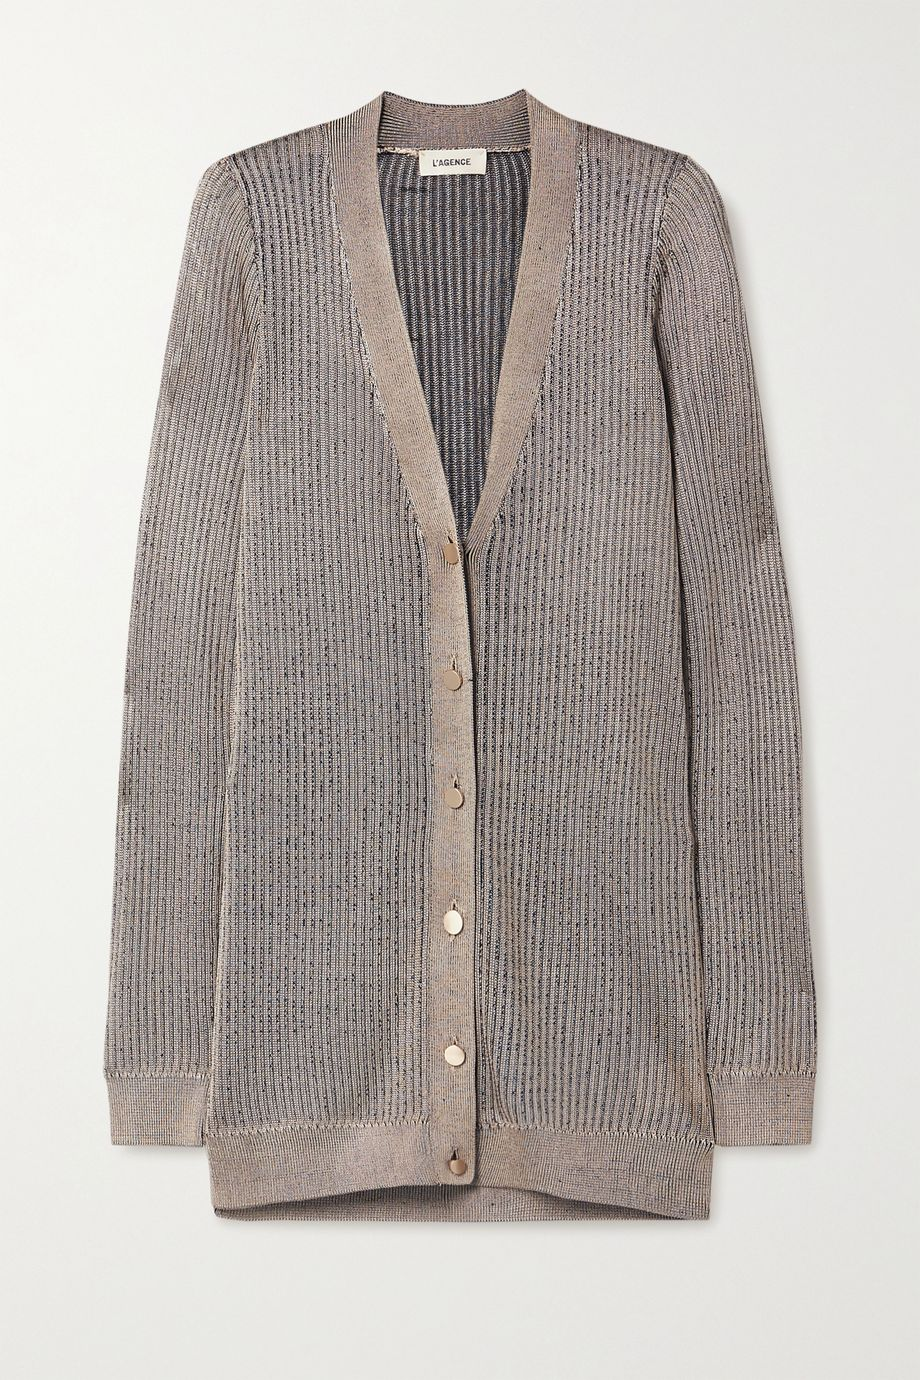 L'Agence Millie ribbed-knit cardigan